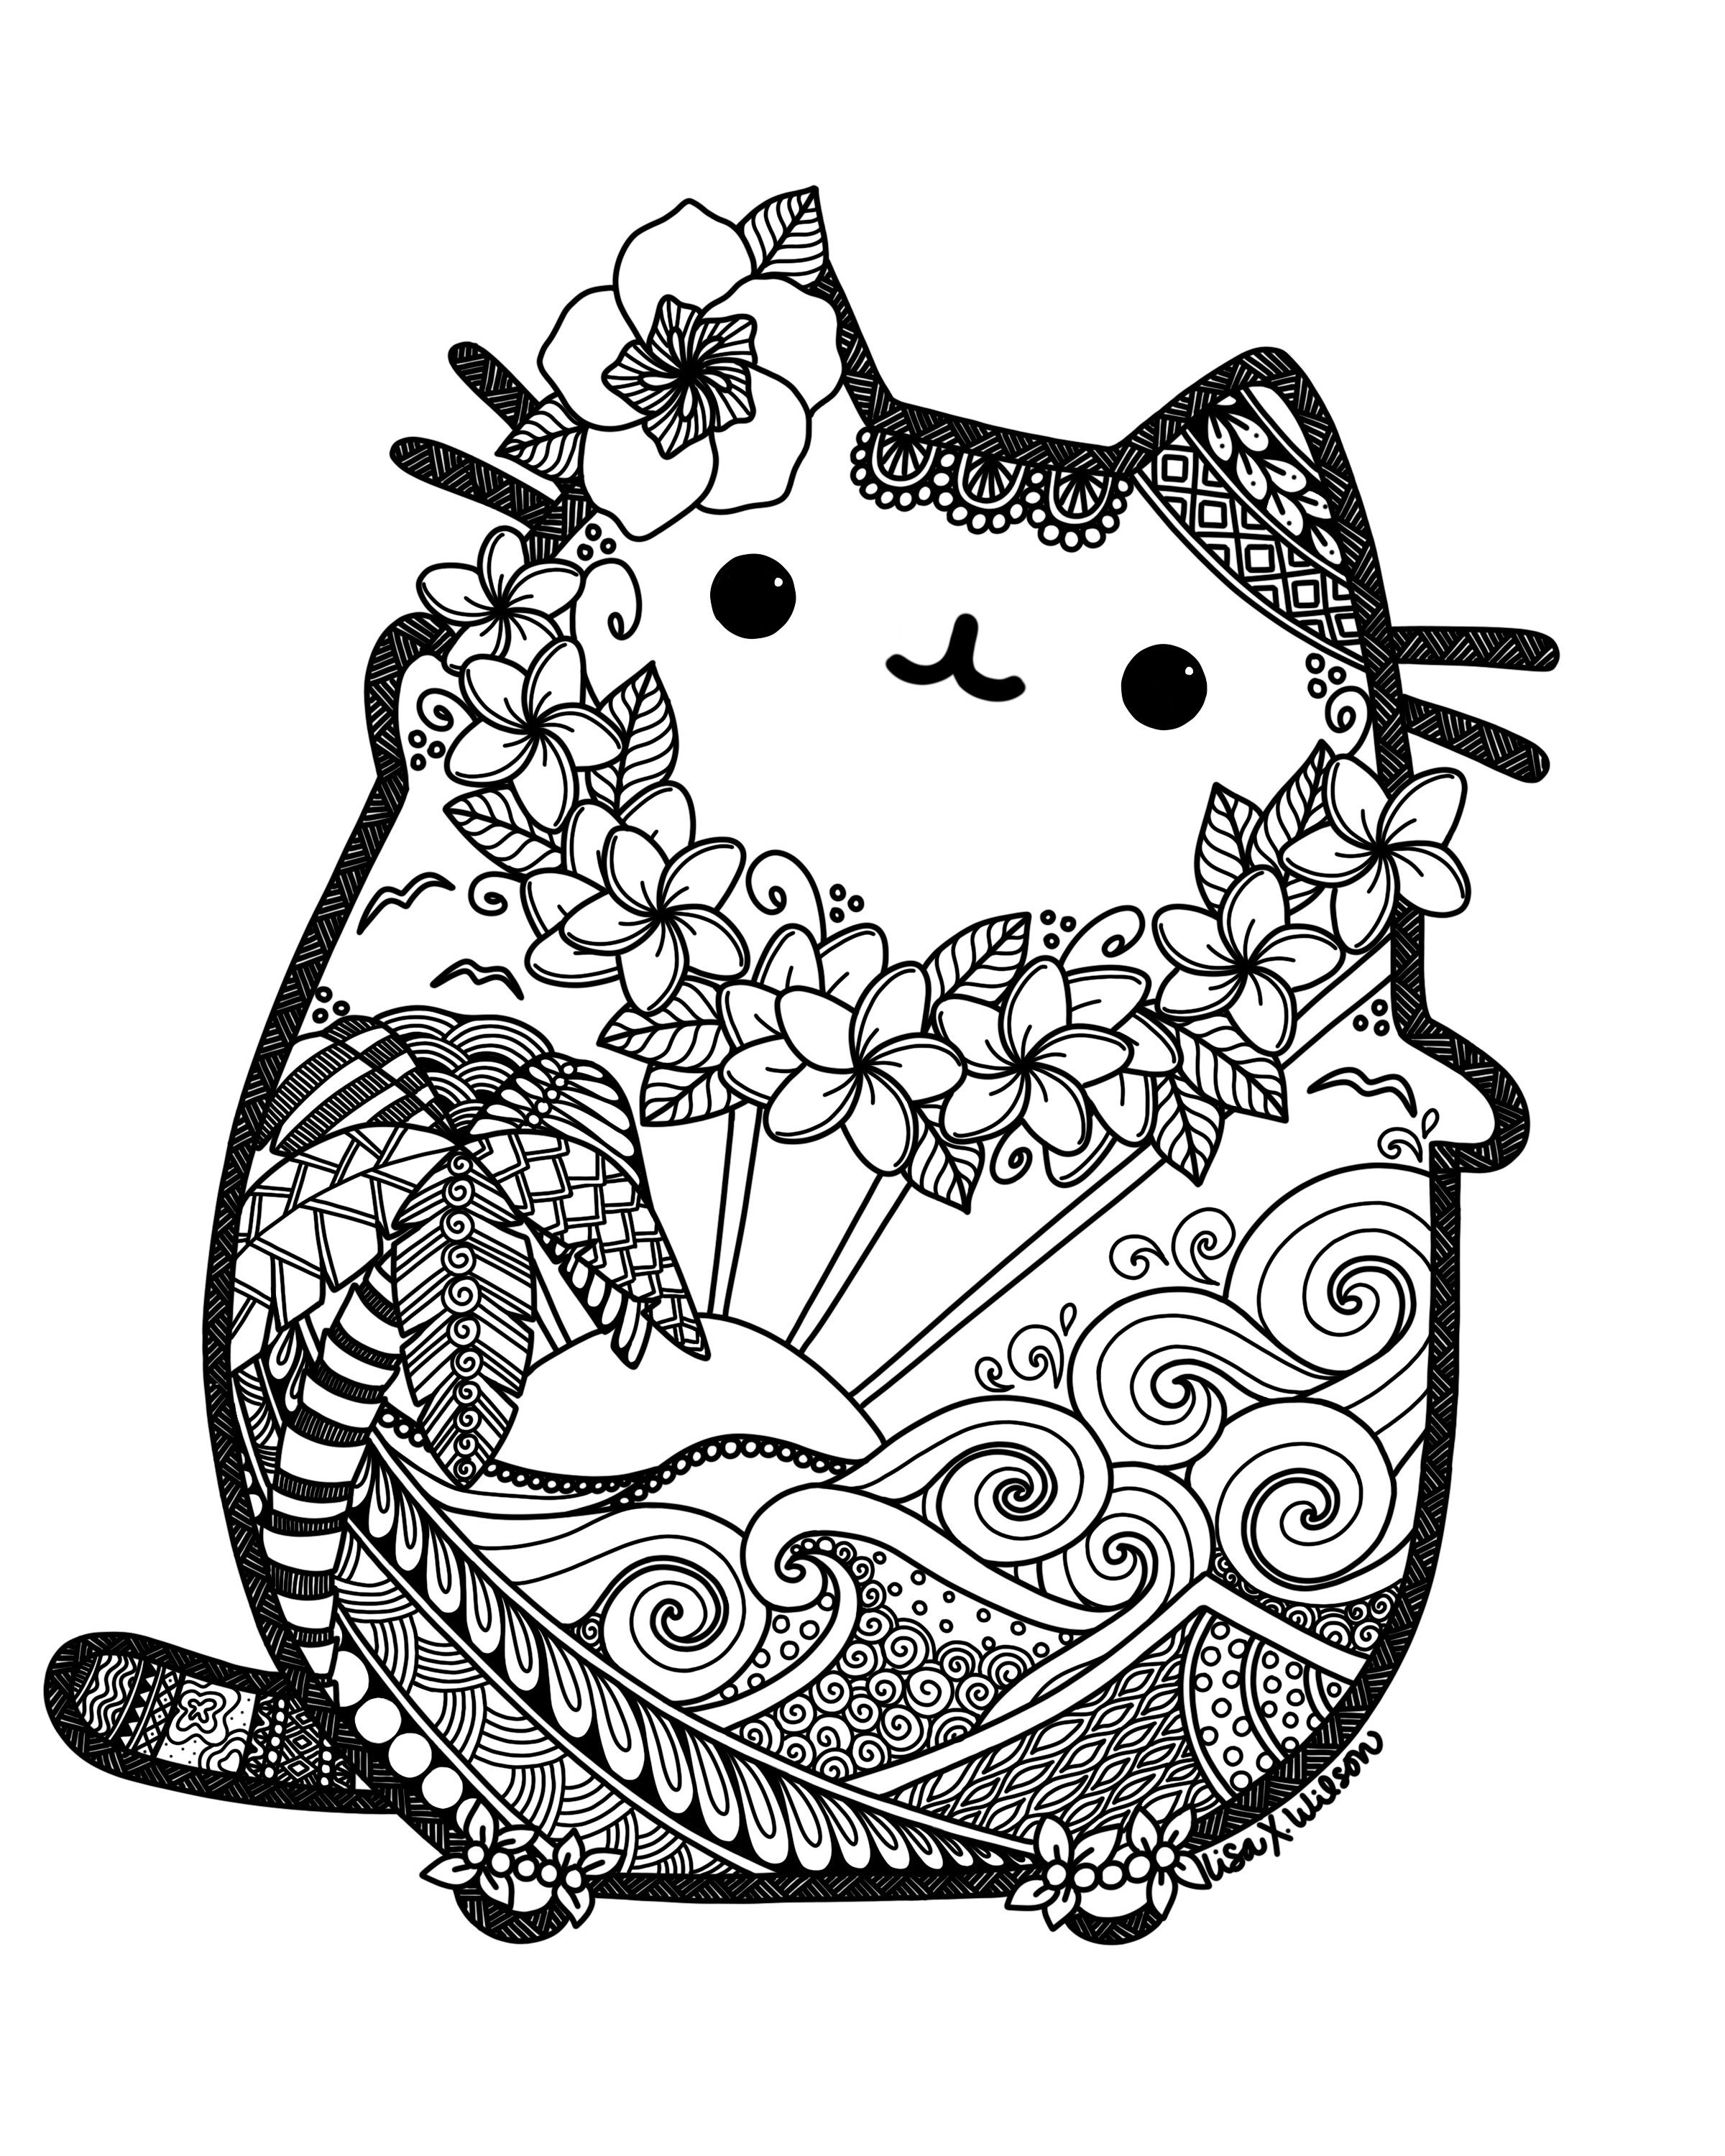 Pusheen Cat Coloring Pages Pusheen Cat Coloring Pages Mandala Free